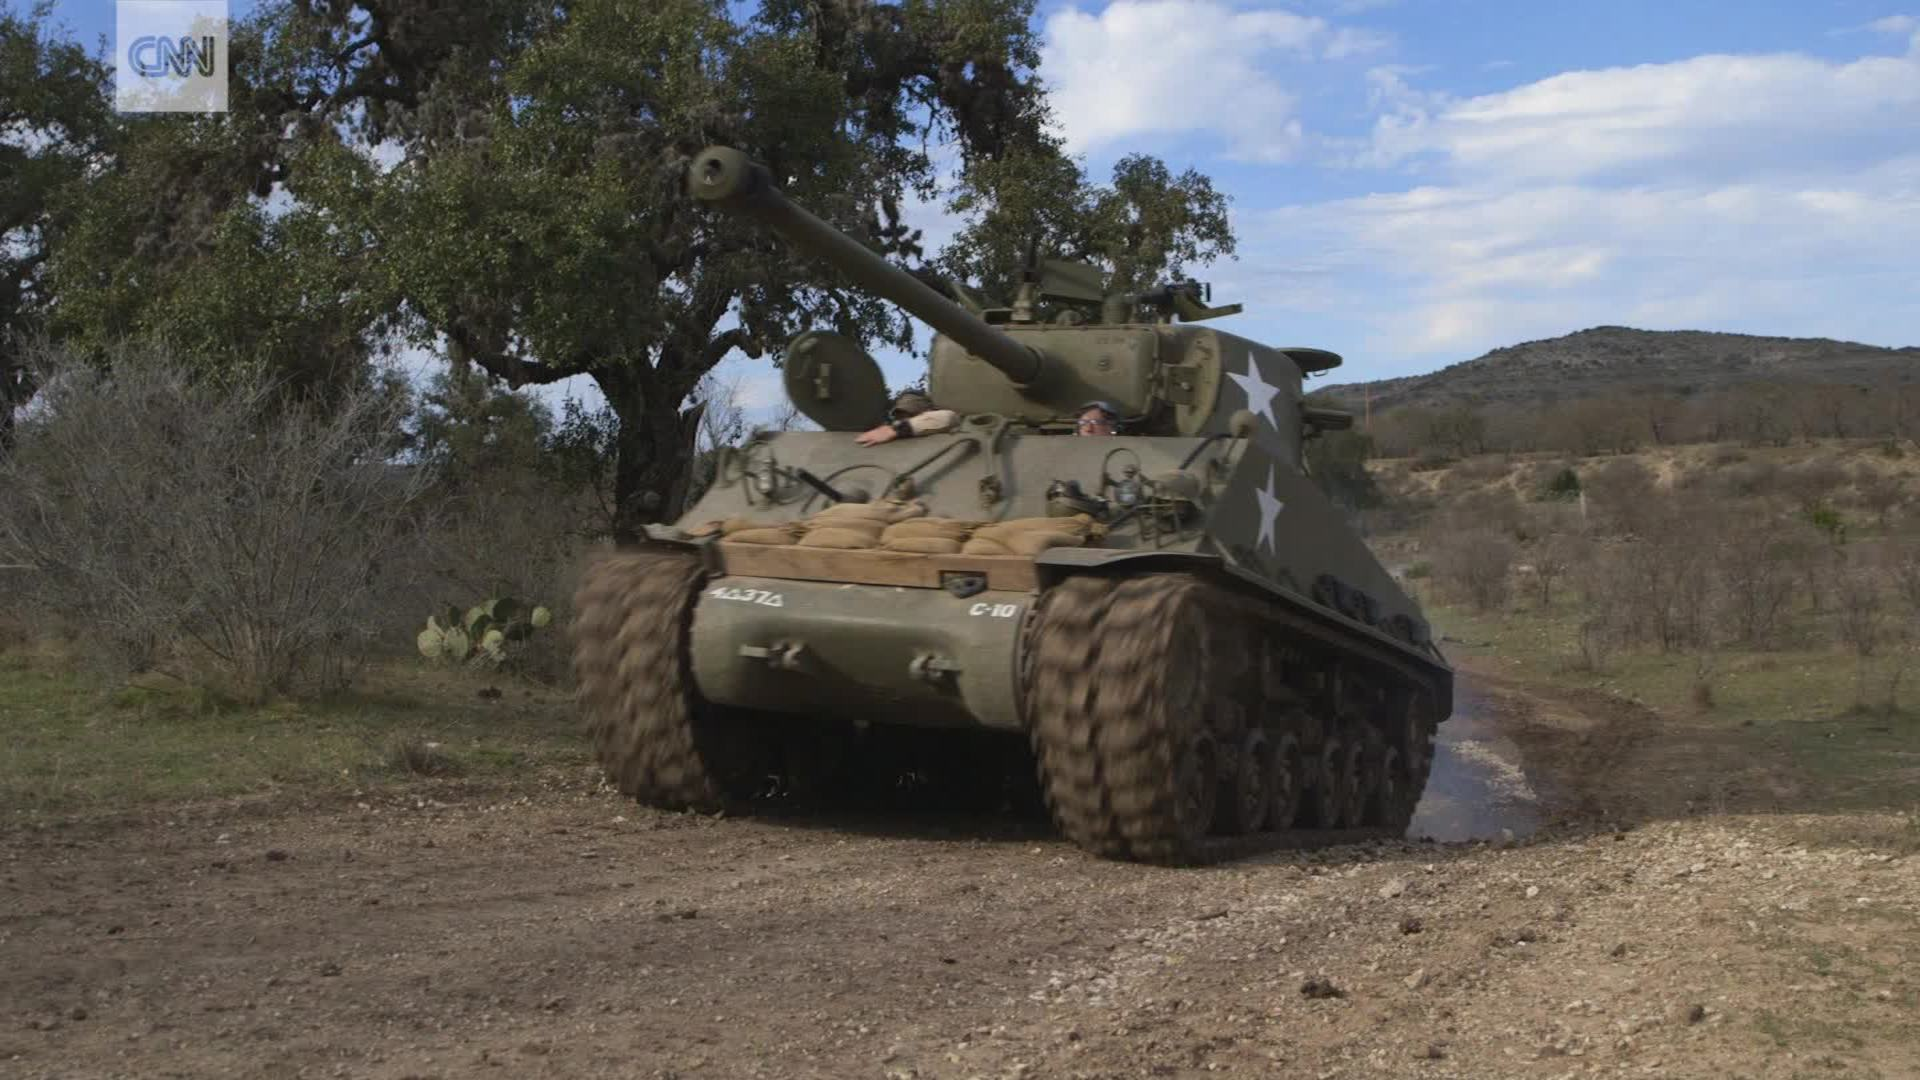 You can drive a tank in Texas